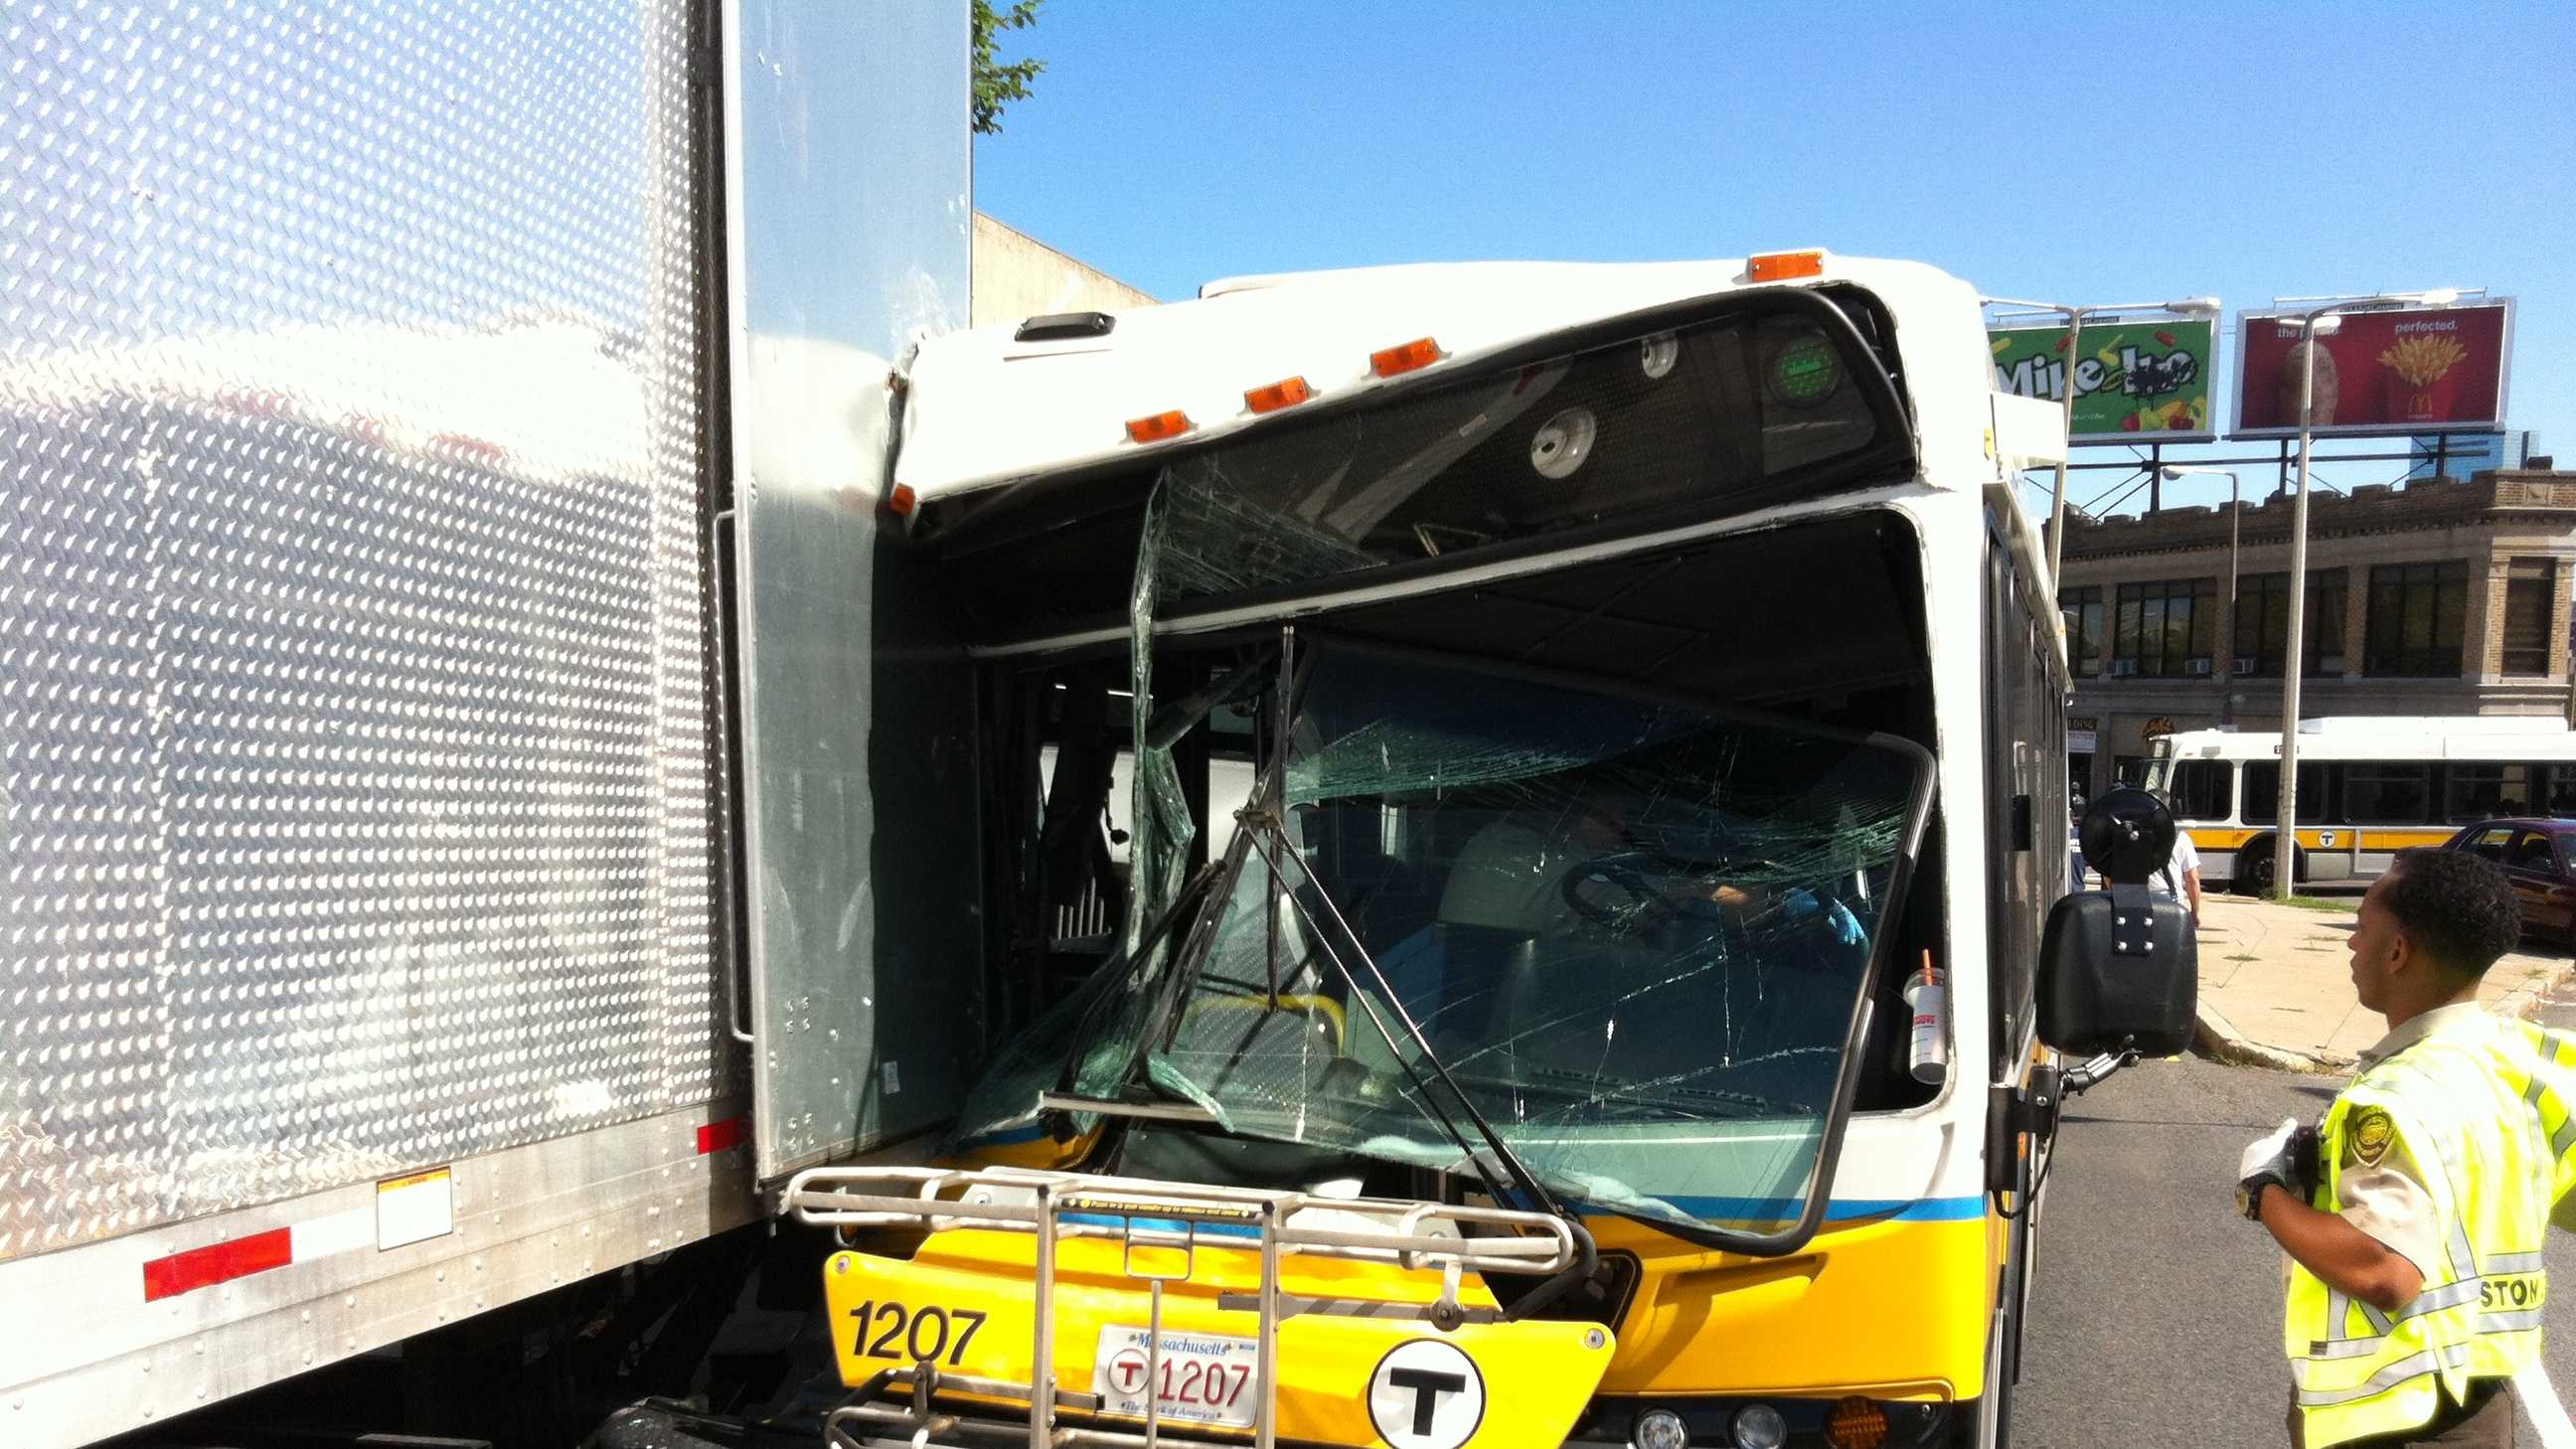 Several people were injured Monday morning when an MBTA bus collided with a parked truck in Roxbury.